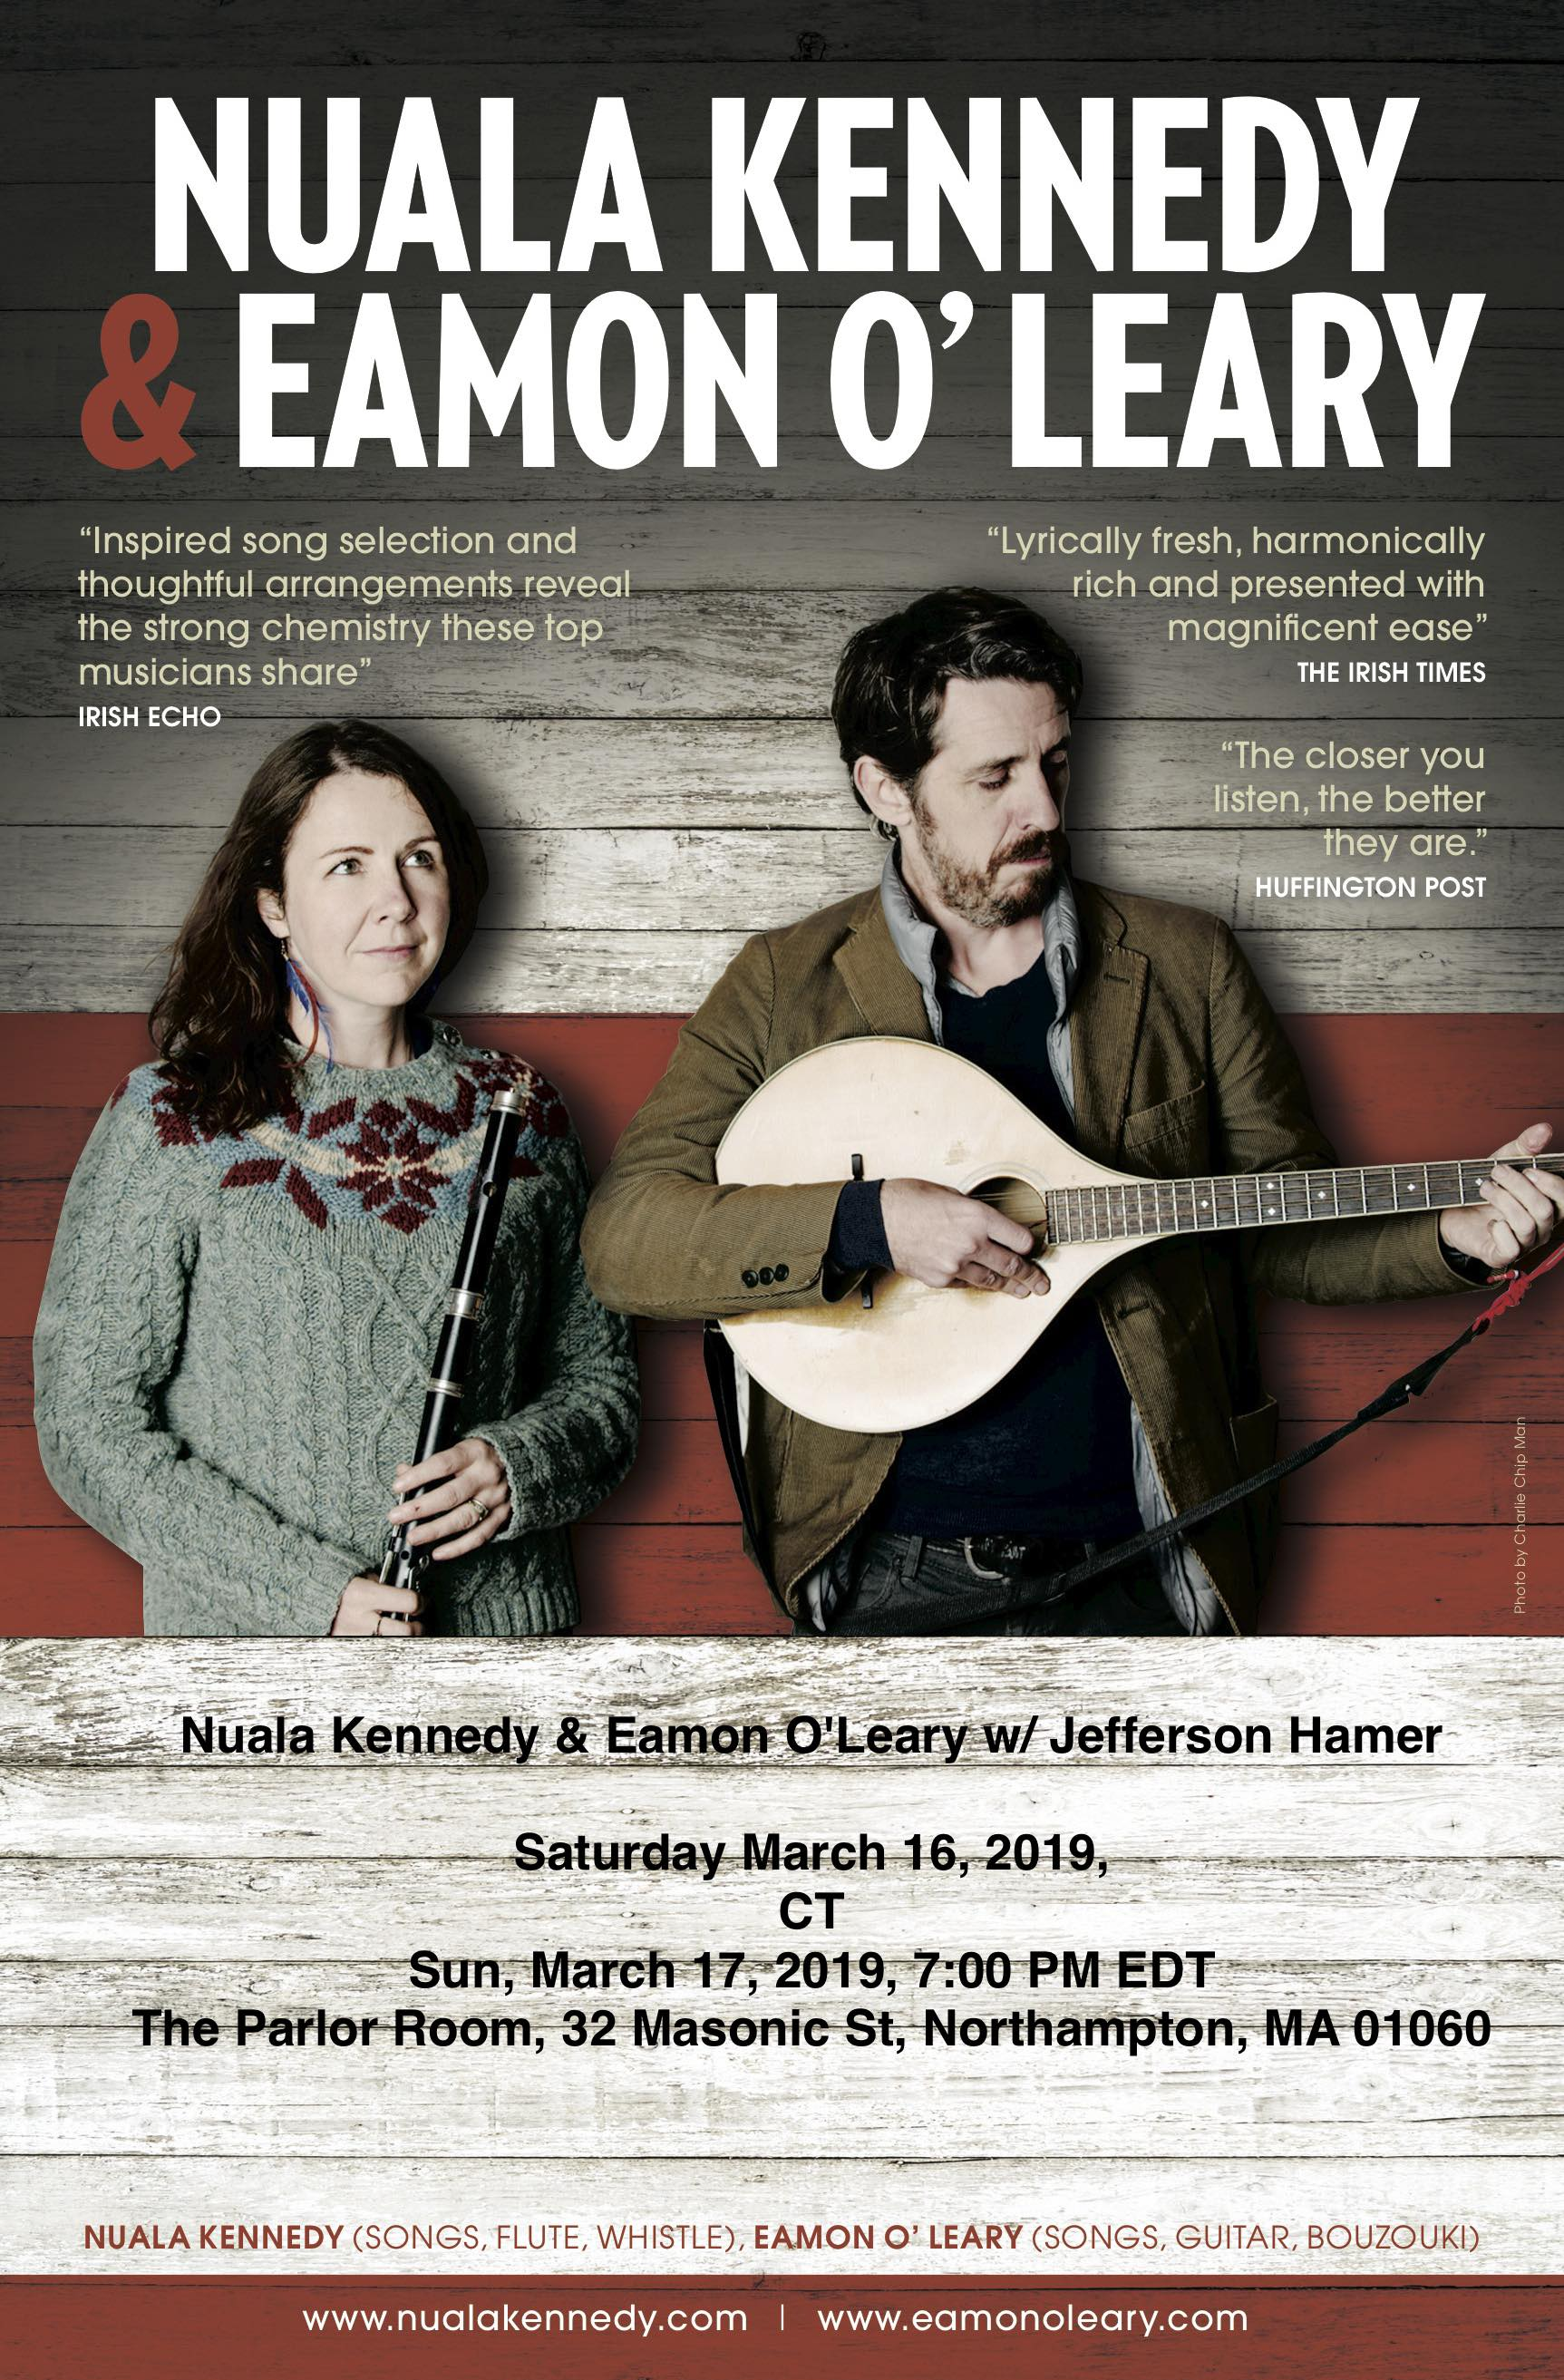 Nuala Kennedy Eamon O'Leary March 2019